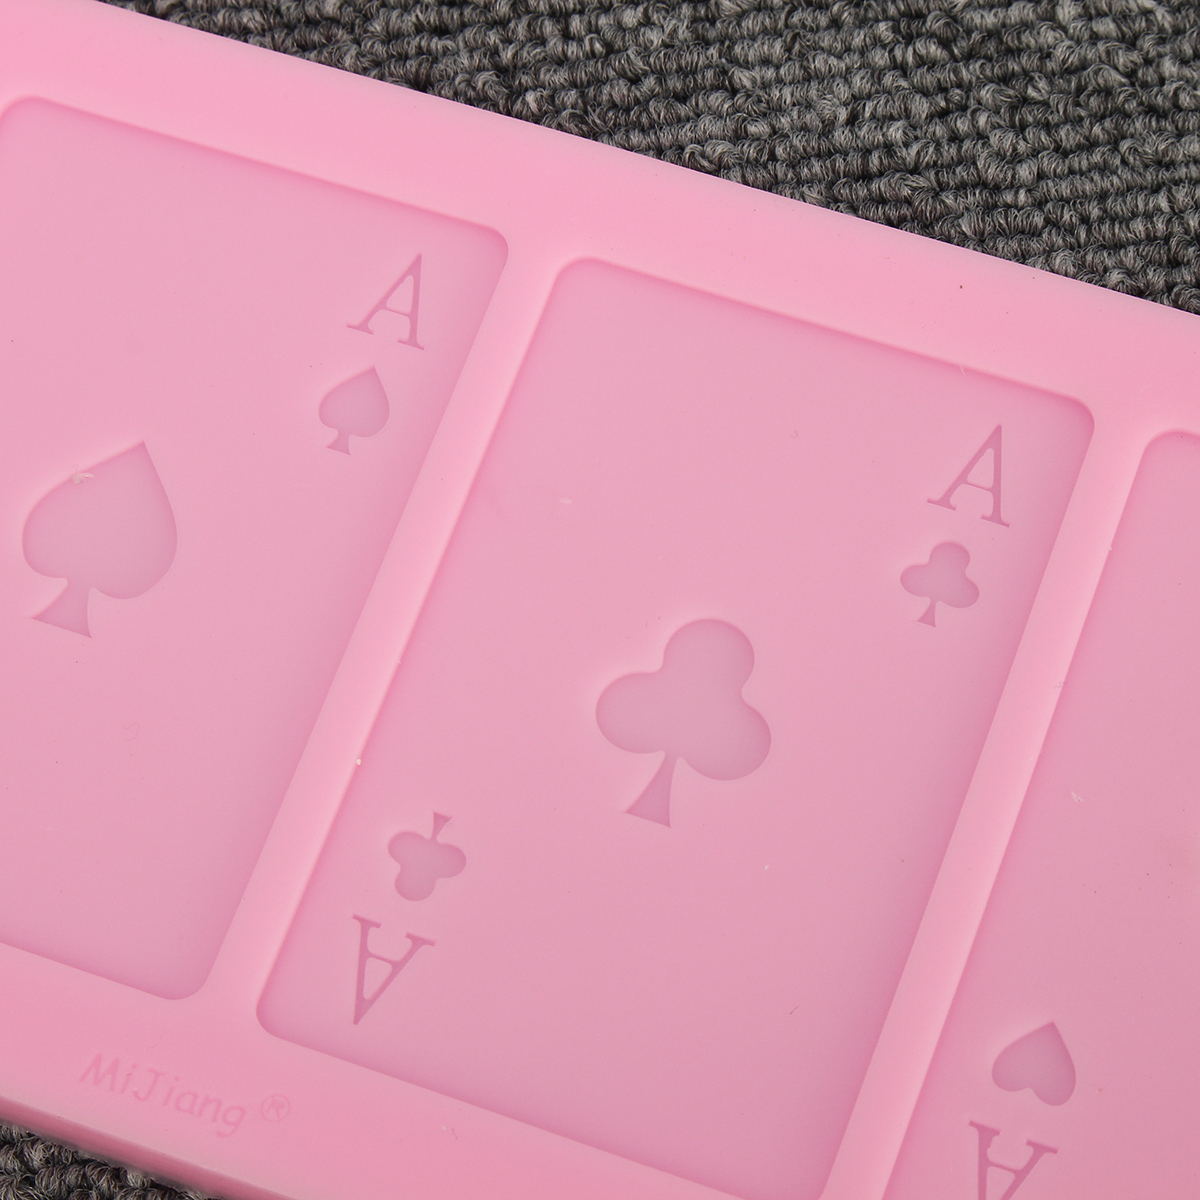 Poker Shape Silicone Chocolate Cake Mold A Poker Card Fondant Candy Baking Mould Decorations